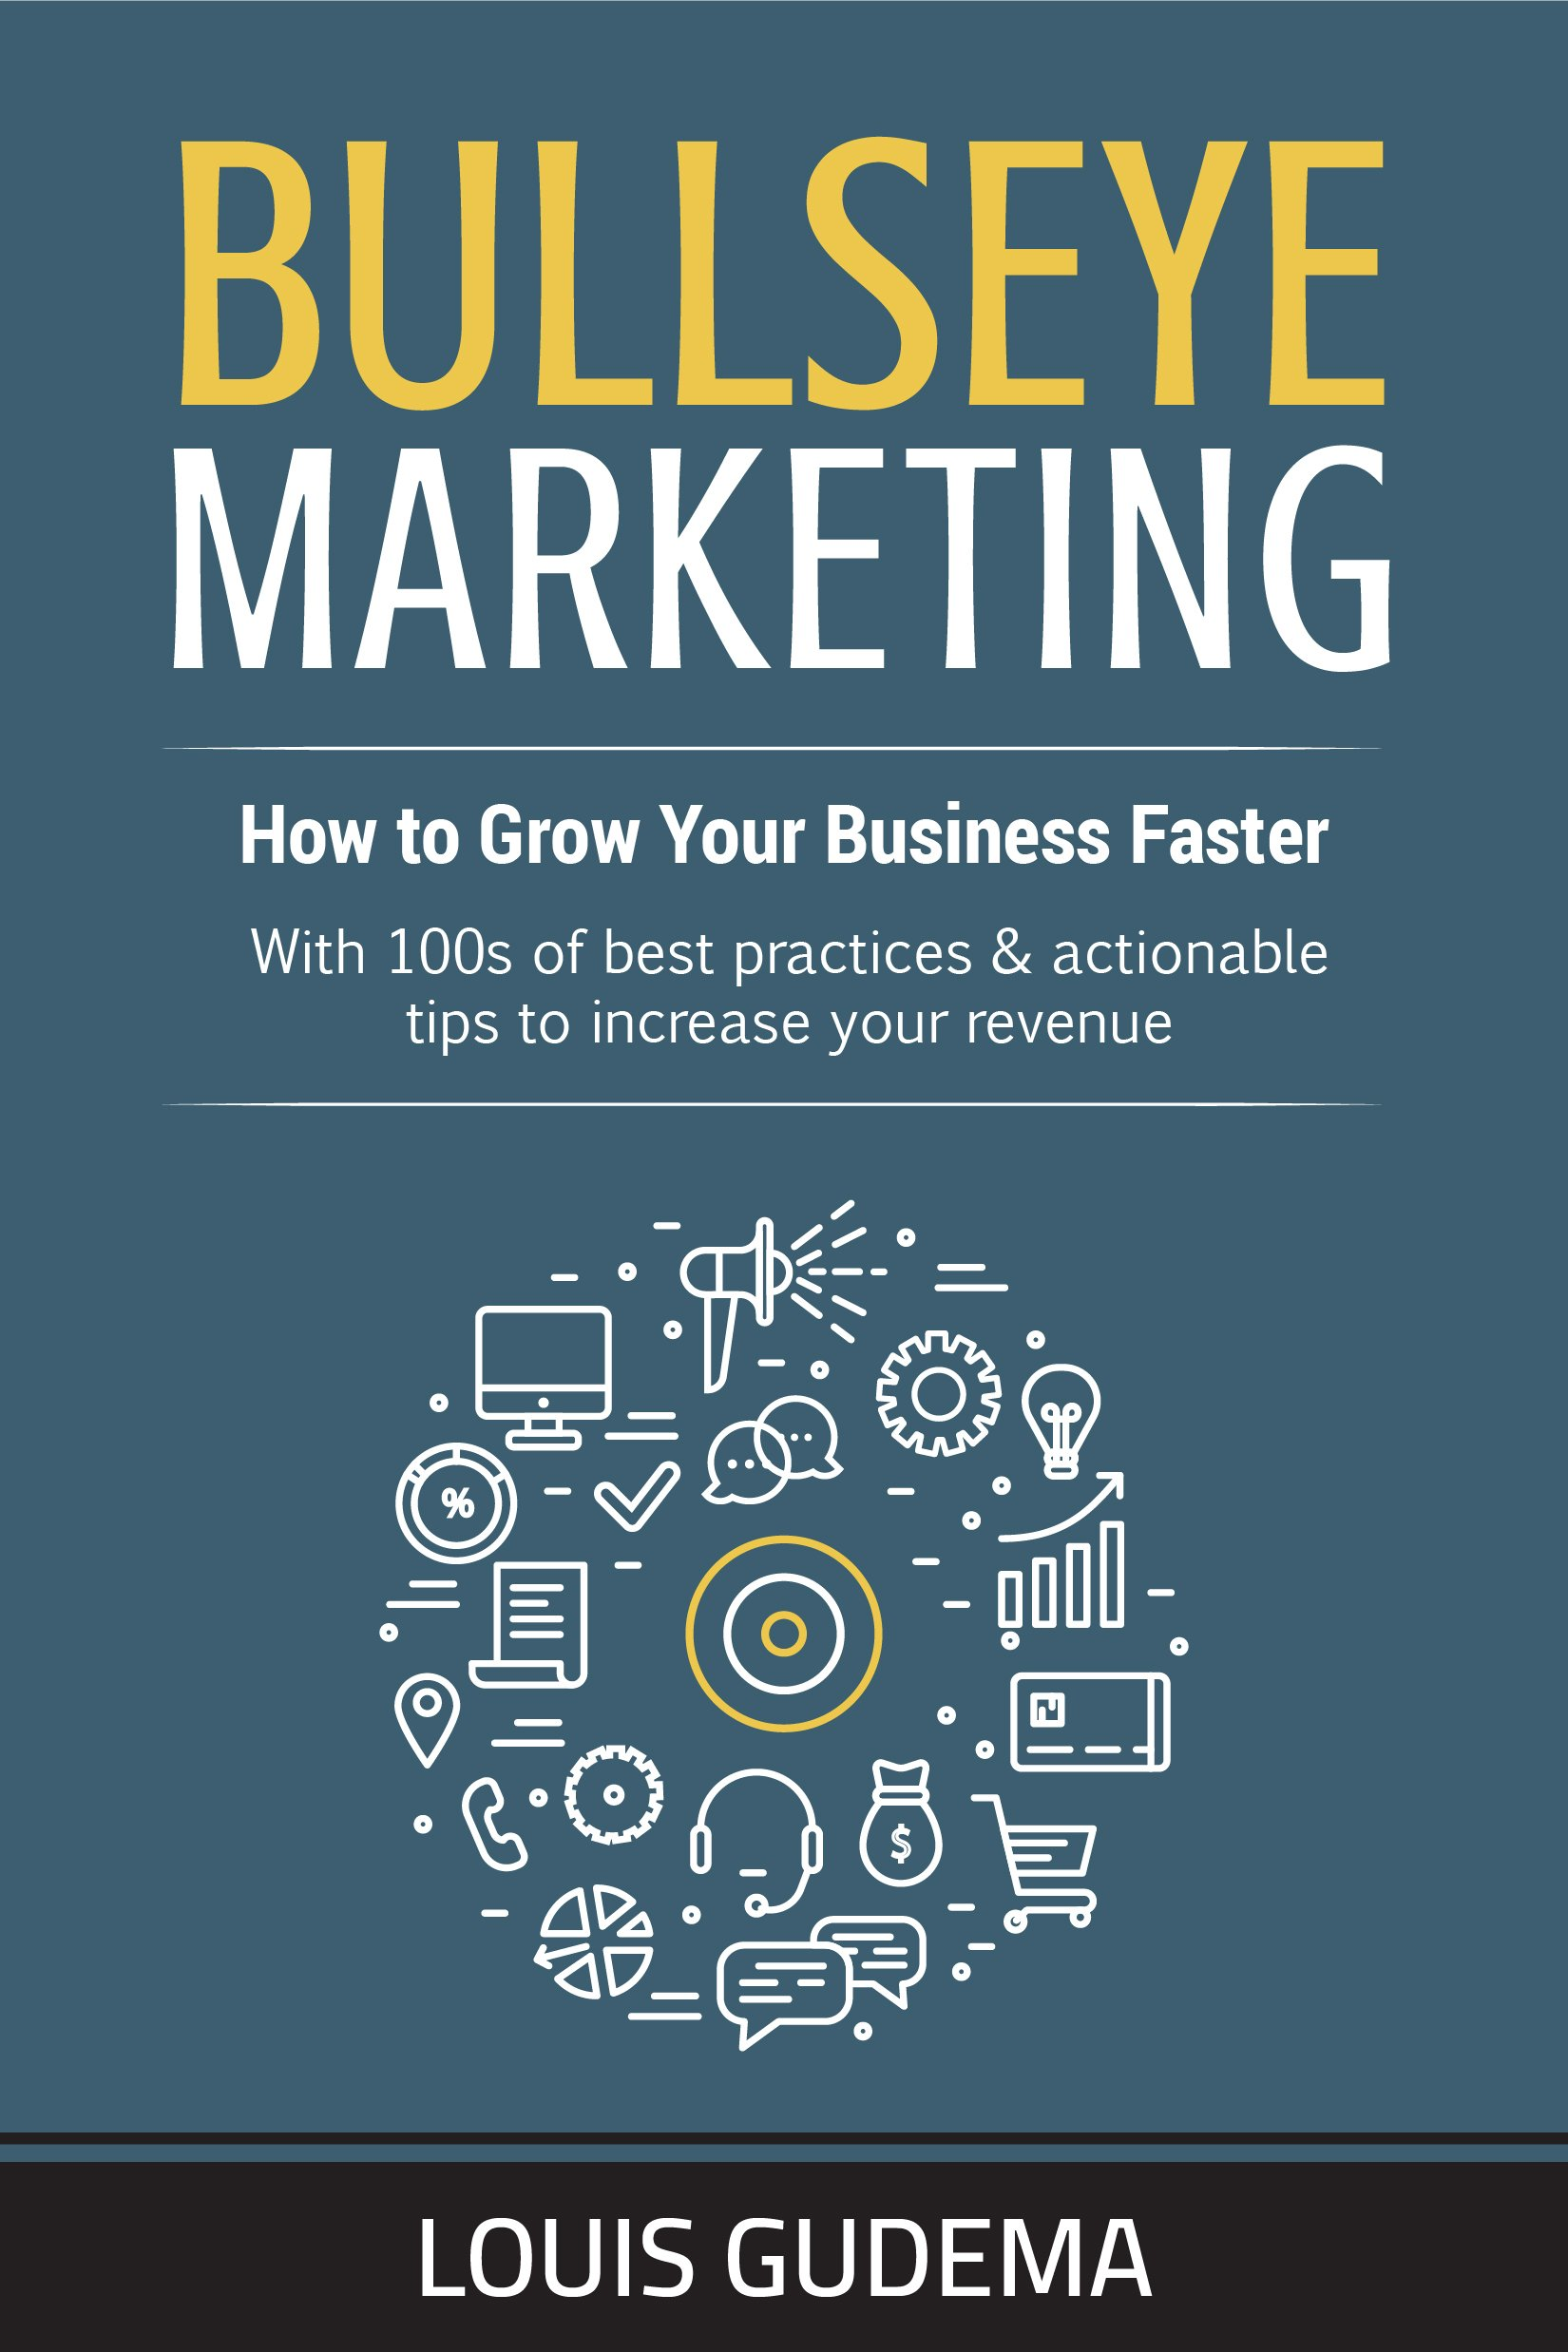 Bullseye Marketing: How to Grow Your Business Faster